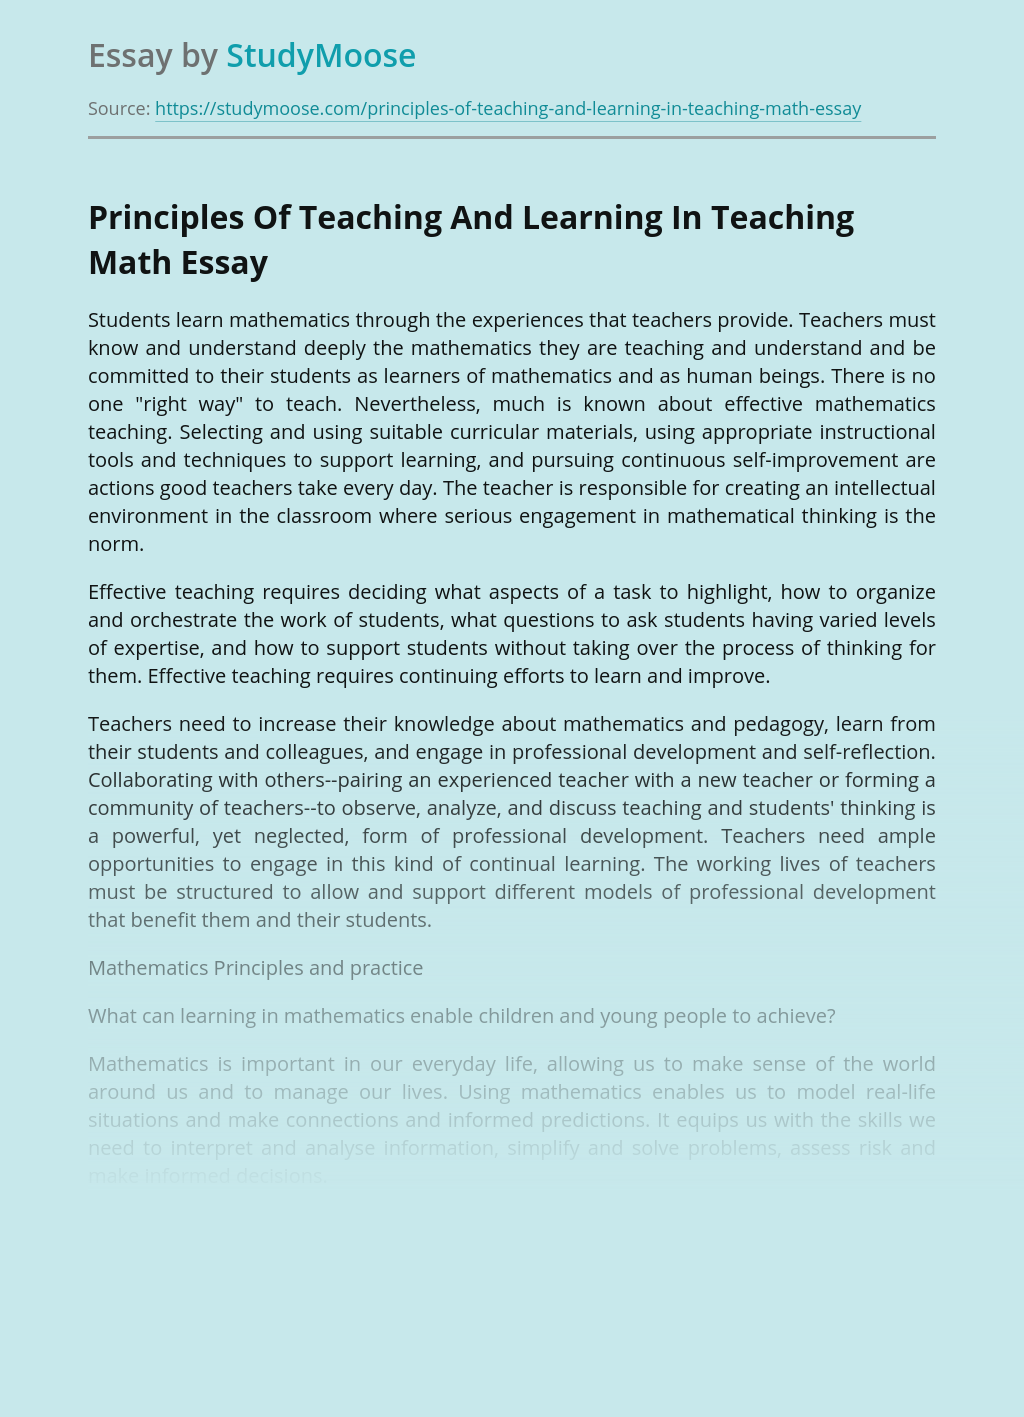 Principles Of Teaching And Learning In Teaching Math